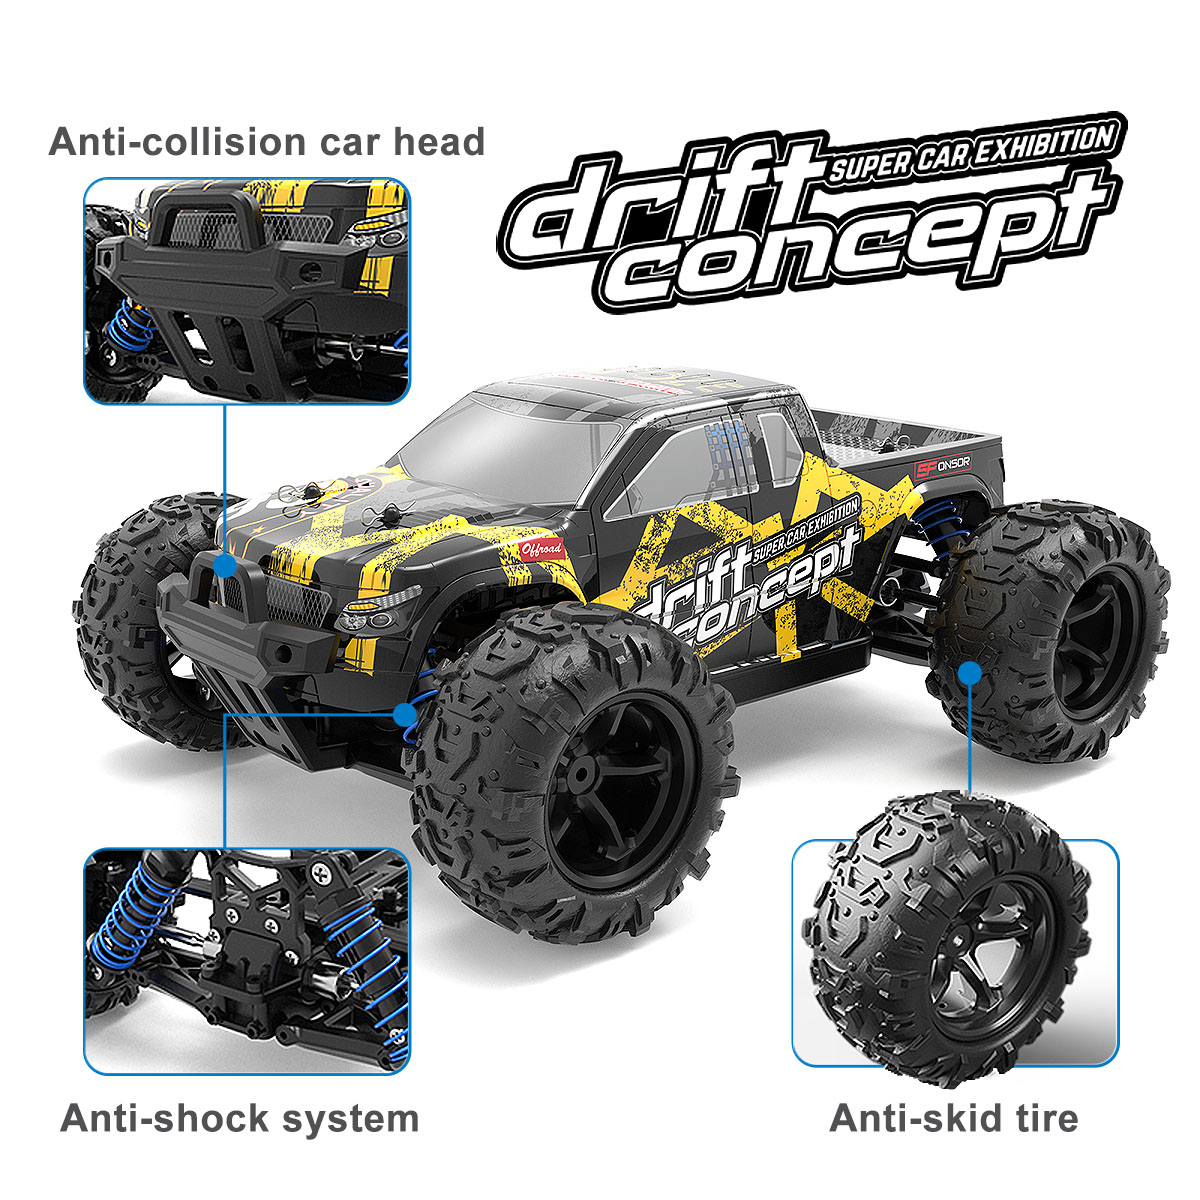 40+km/h Remote Control Car 1:18 Scale High Speed Off Road Vehicle Toys <font><b>RC</b></font> Buggy <font><b>Drift</b></font> Driving Car for Kids and Adults Gift image